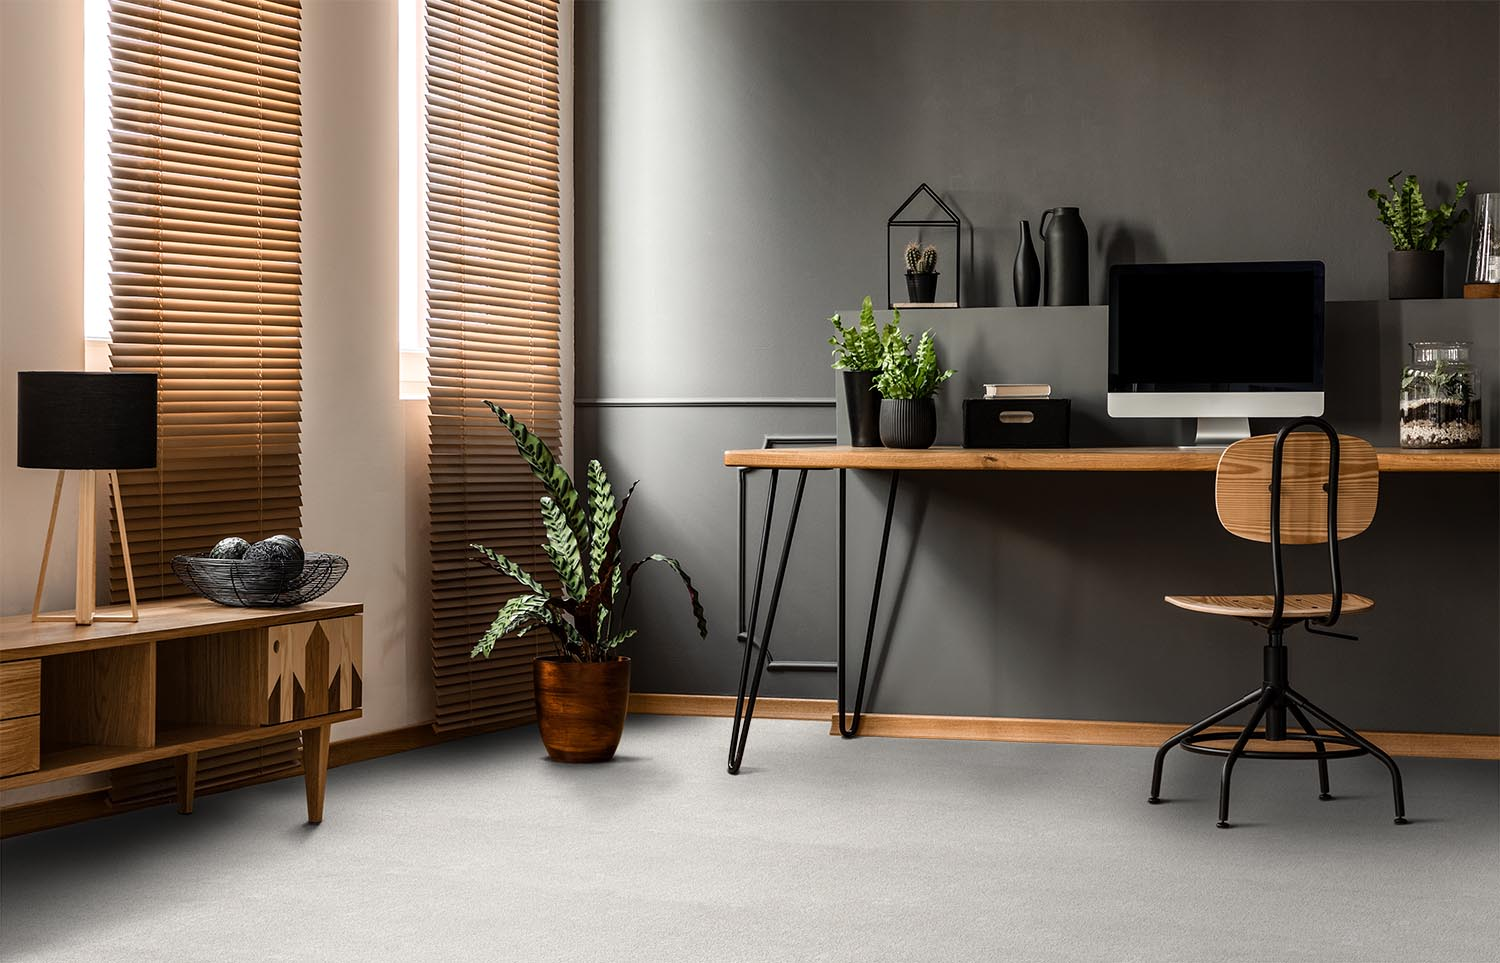 Softology - S201 - Plume home office